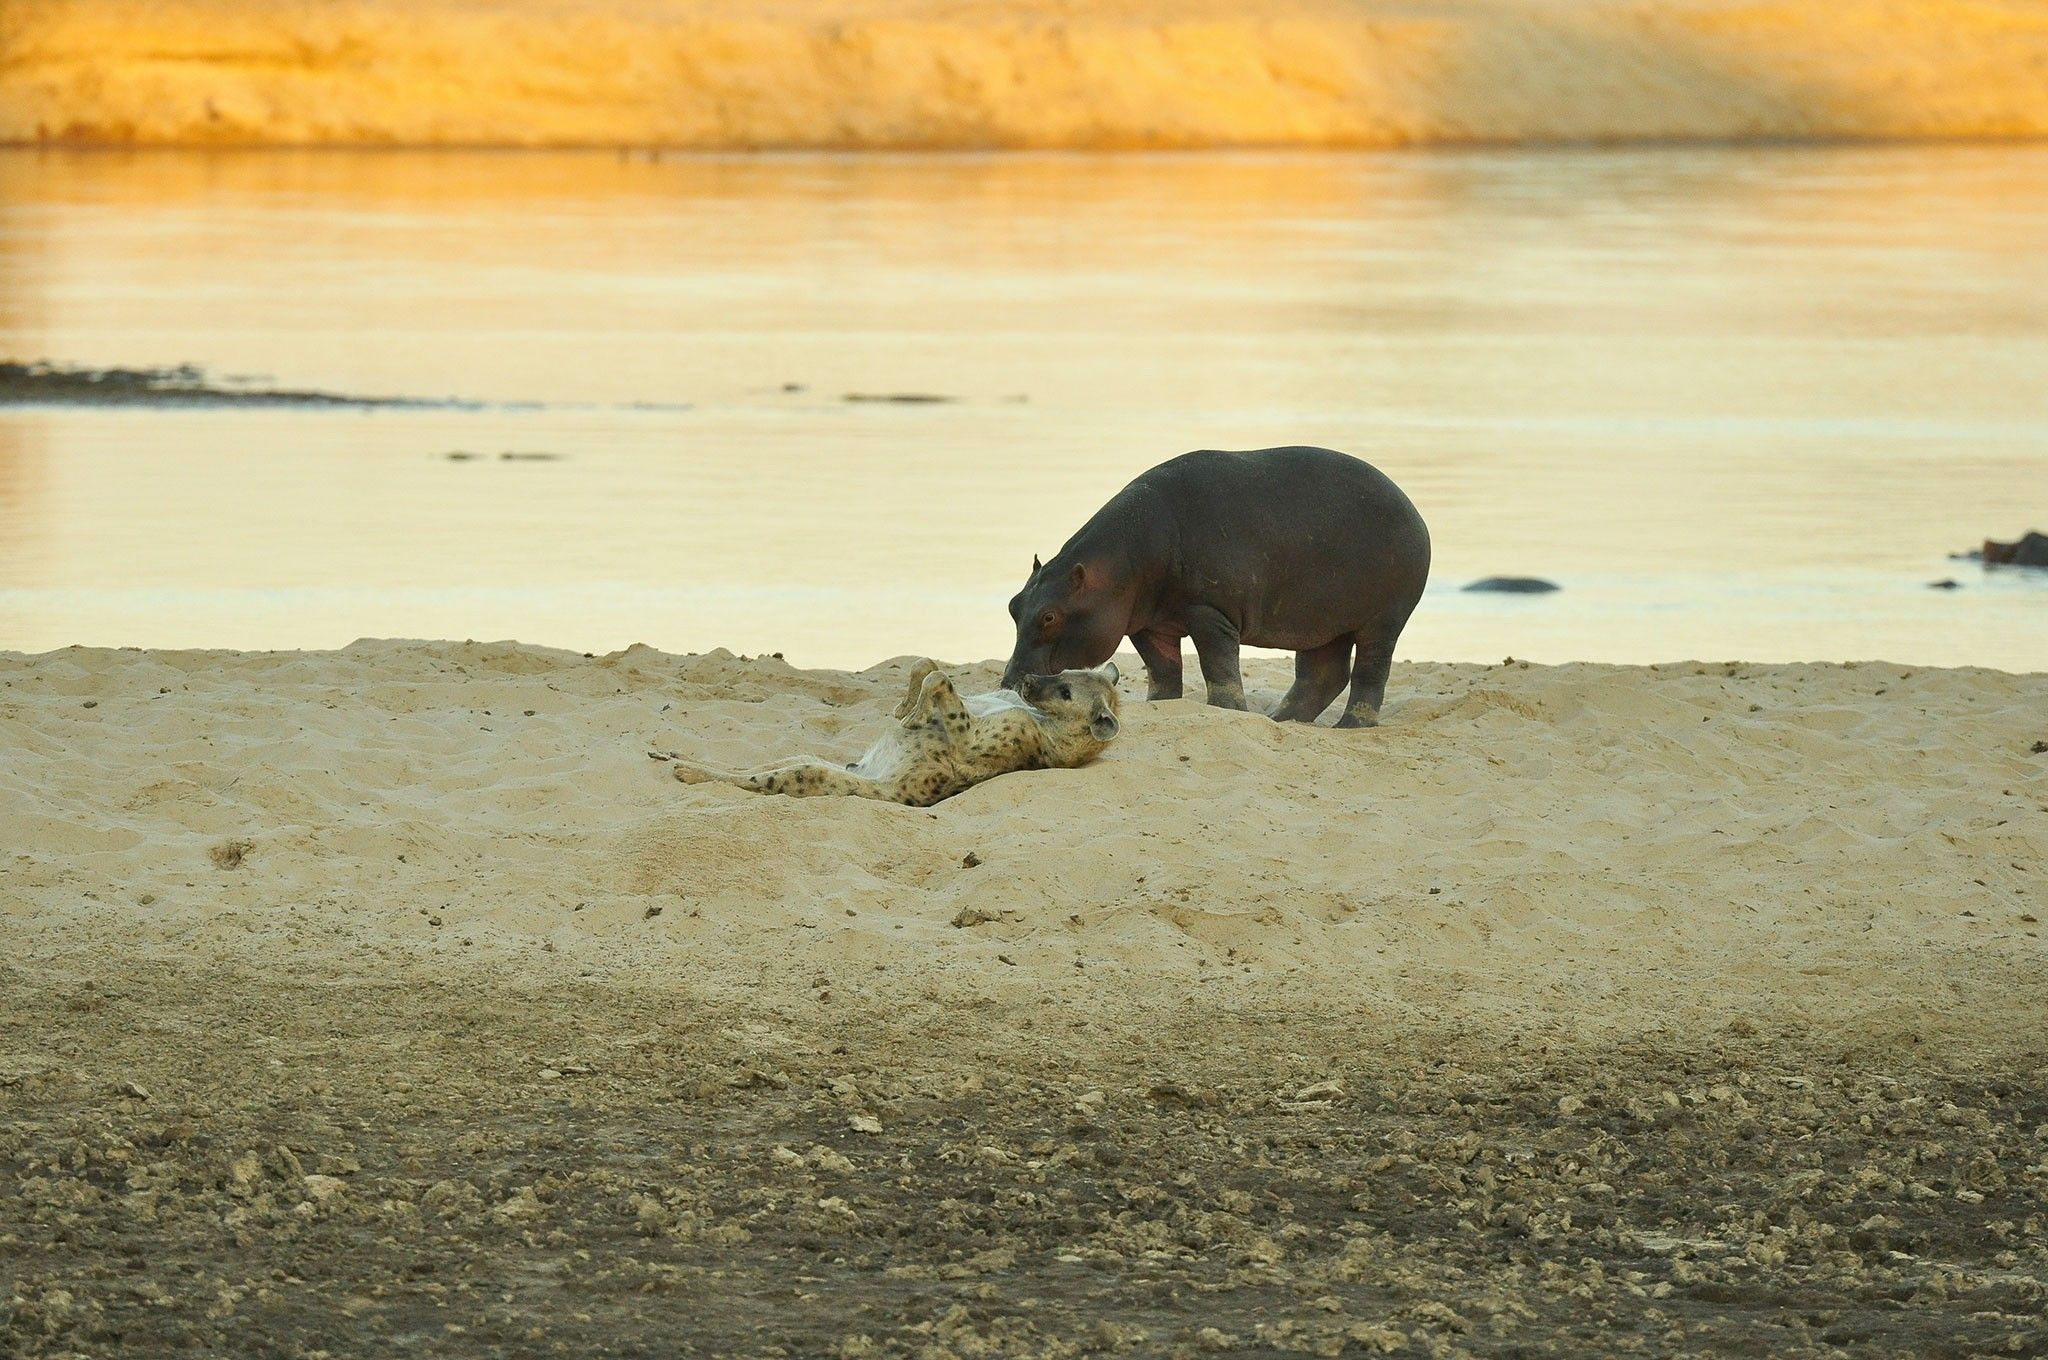 Hippo and hyena touch noses in rare encounter | National Geographic